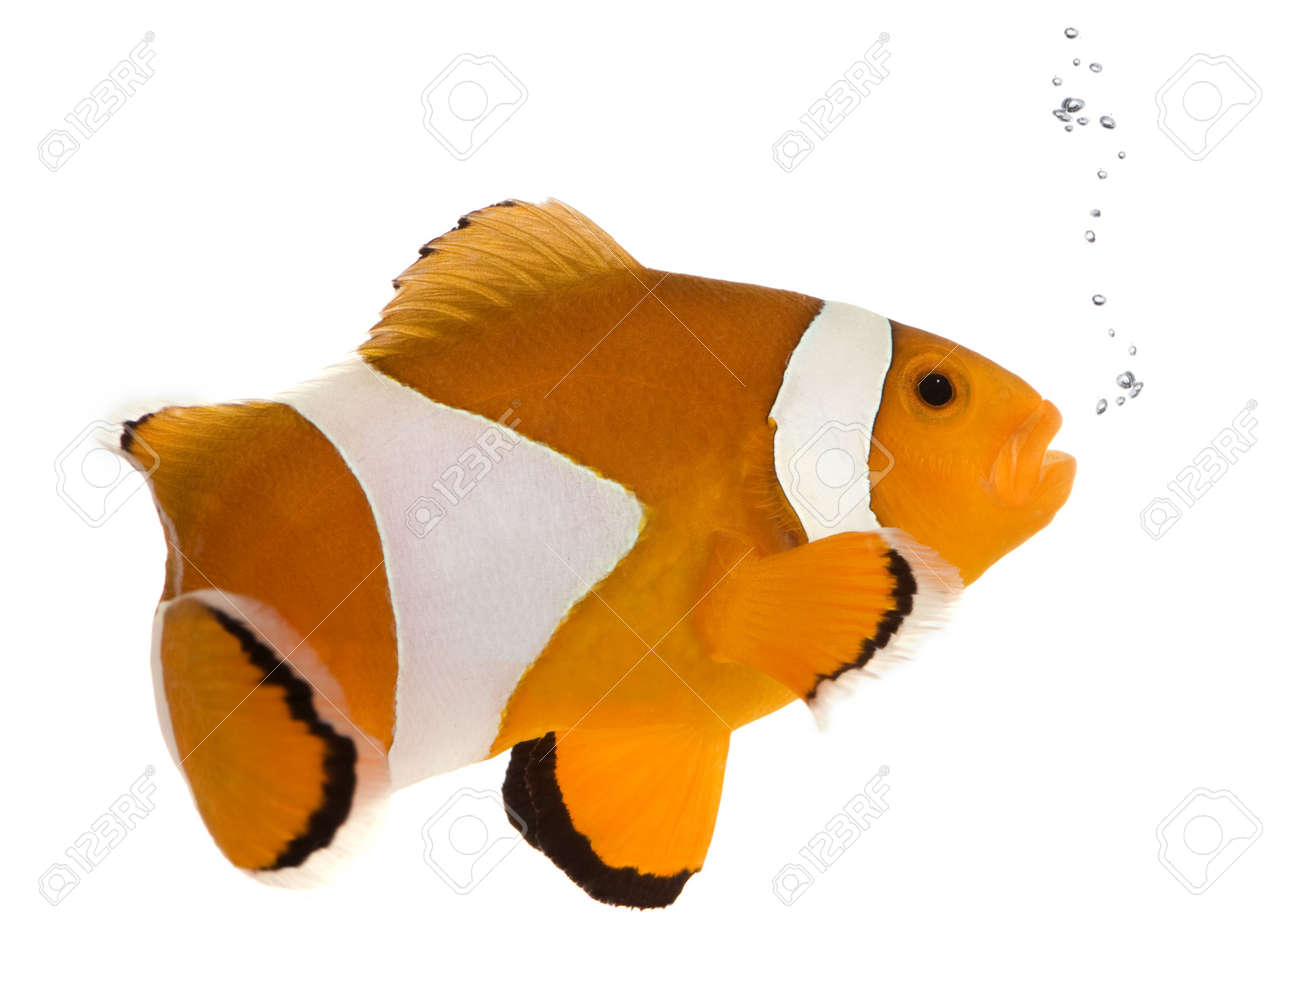 Clownfish in front of a white background Stock Photo - 2111775